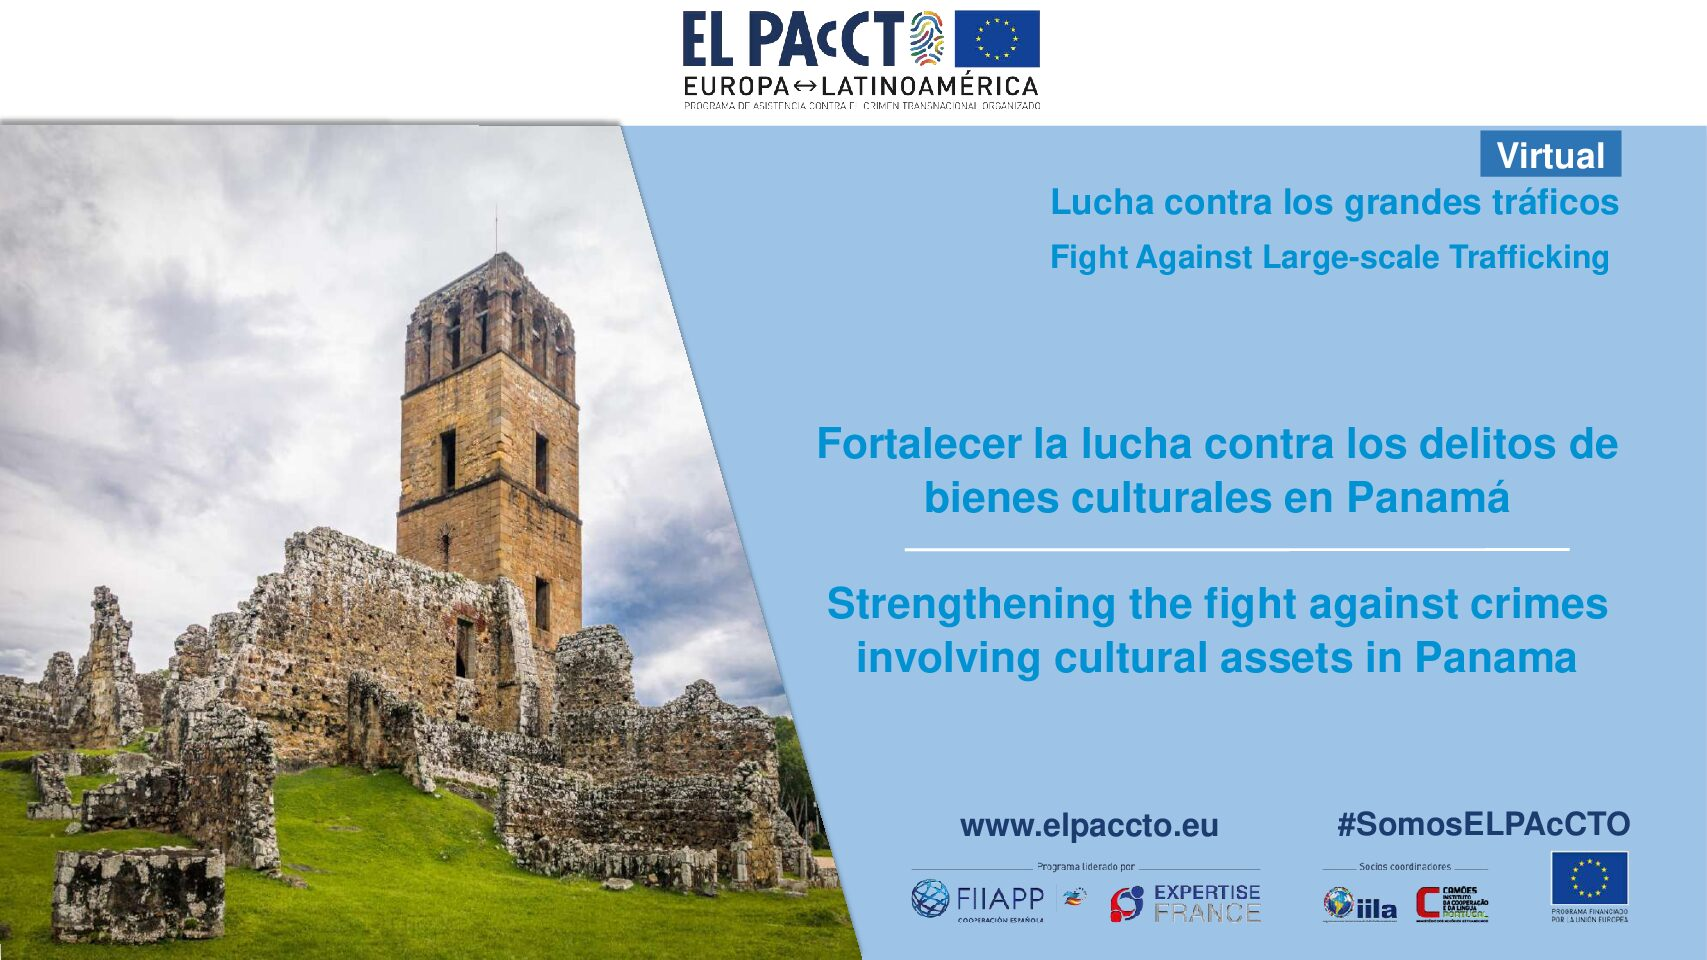 Assistance to create a specialised unit to protect cultural assets in Panama